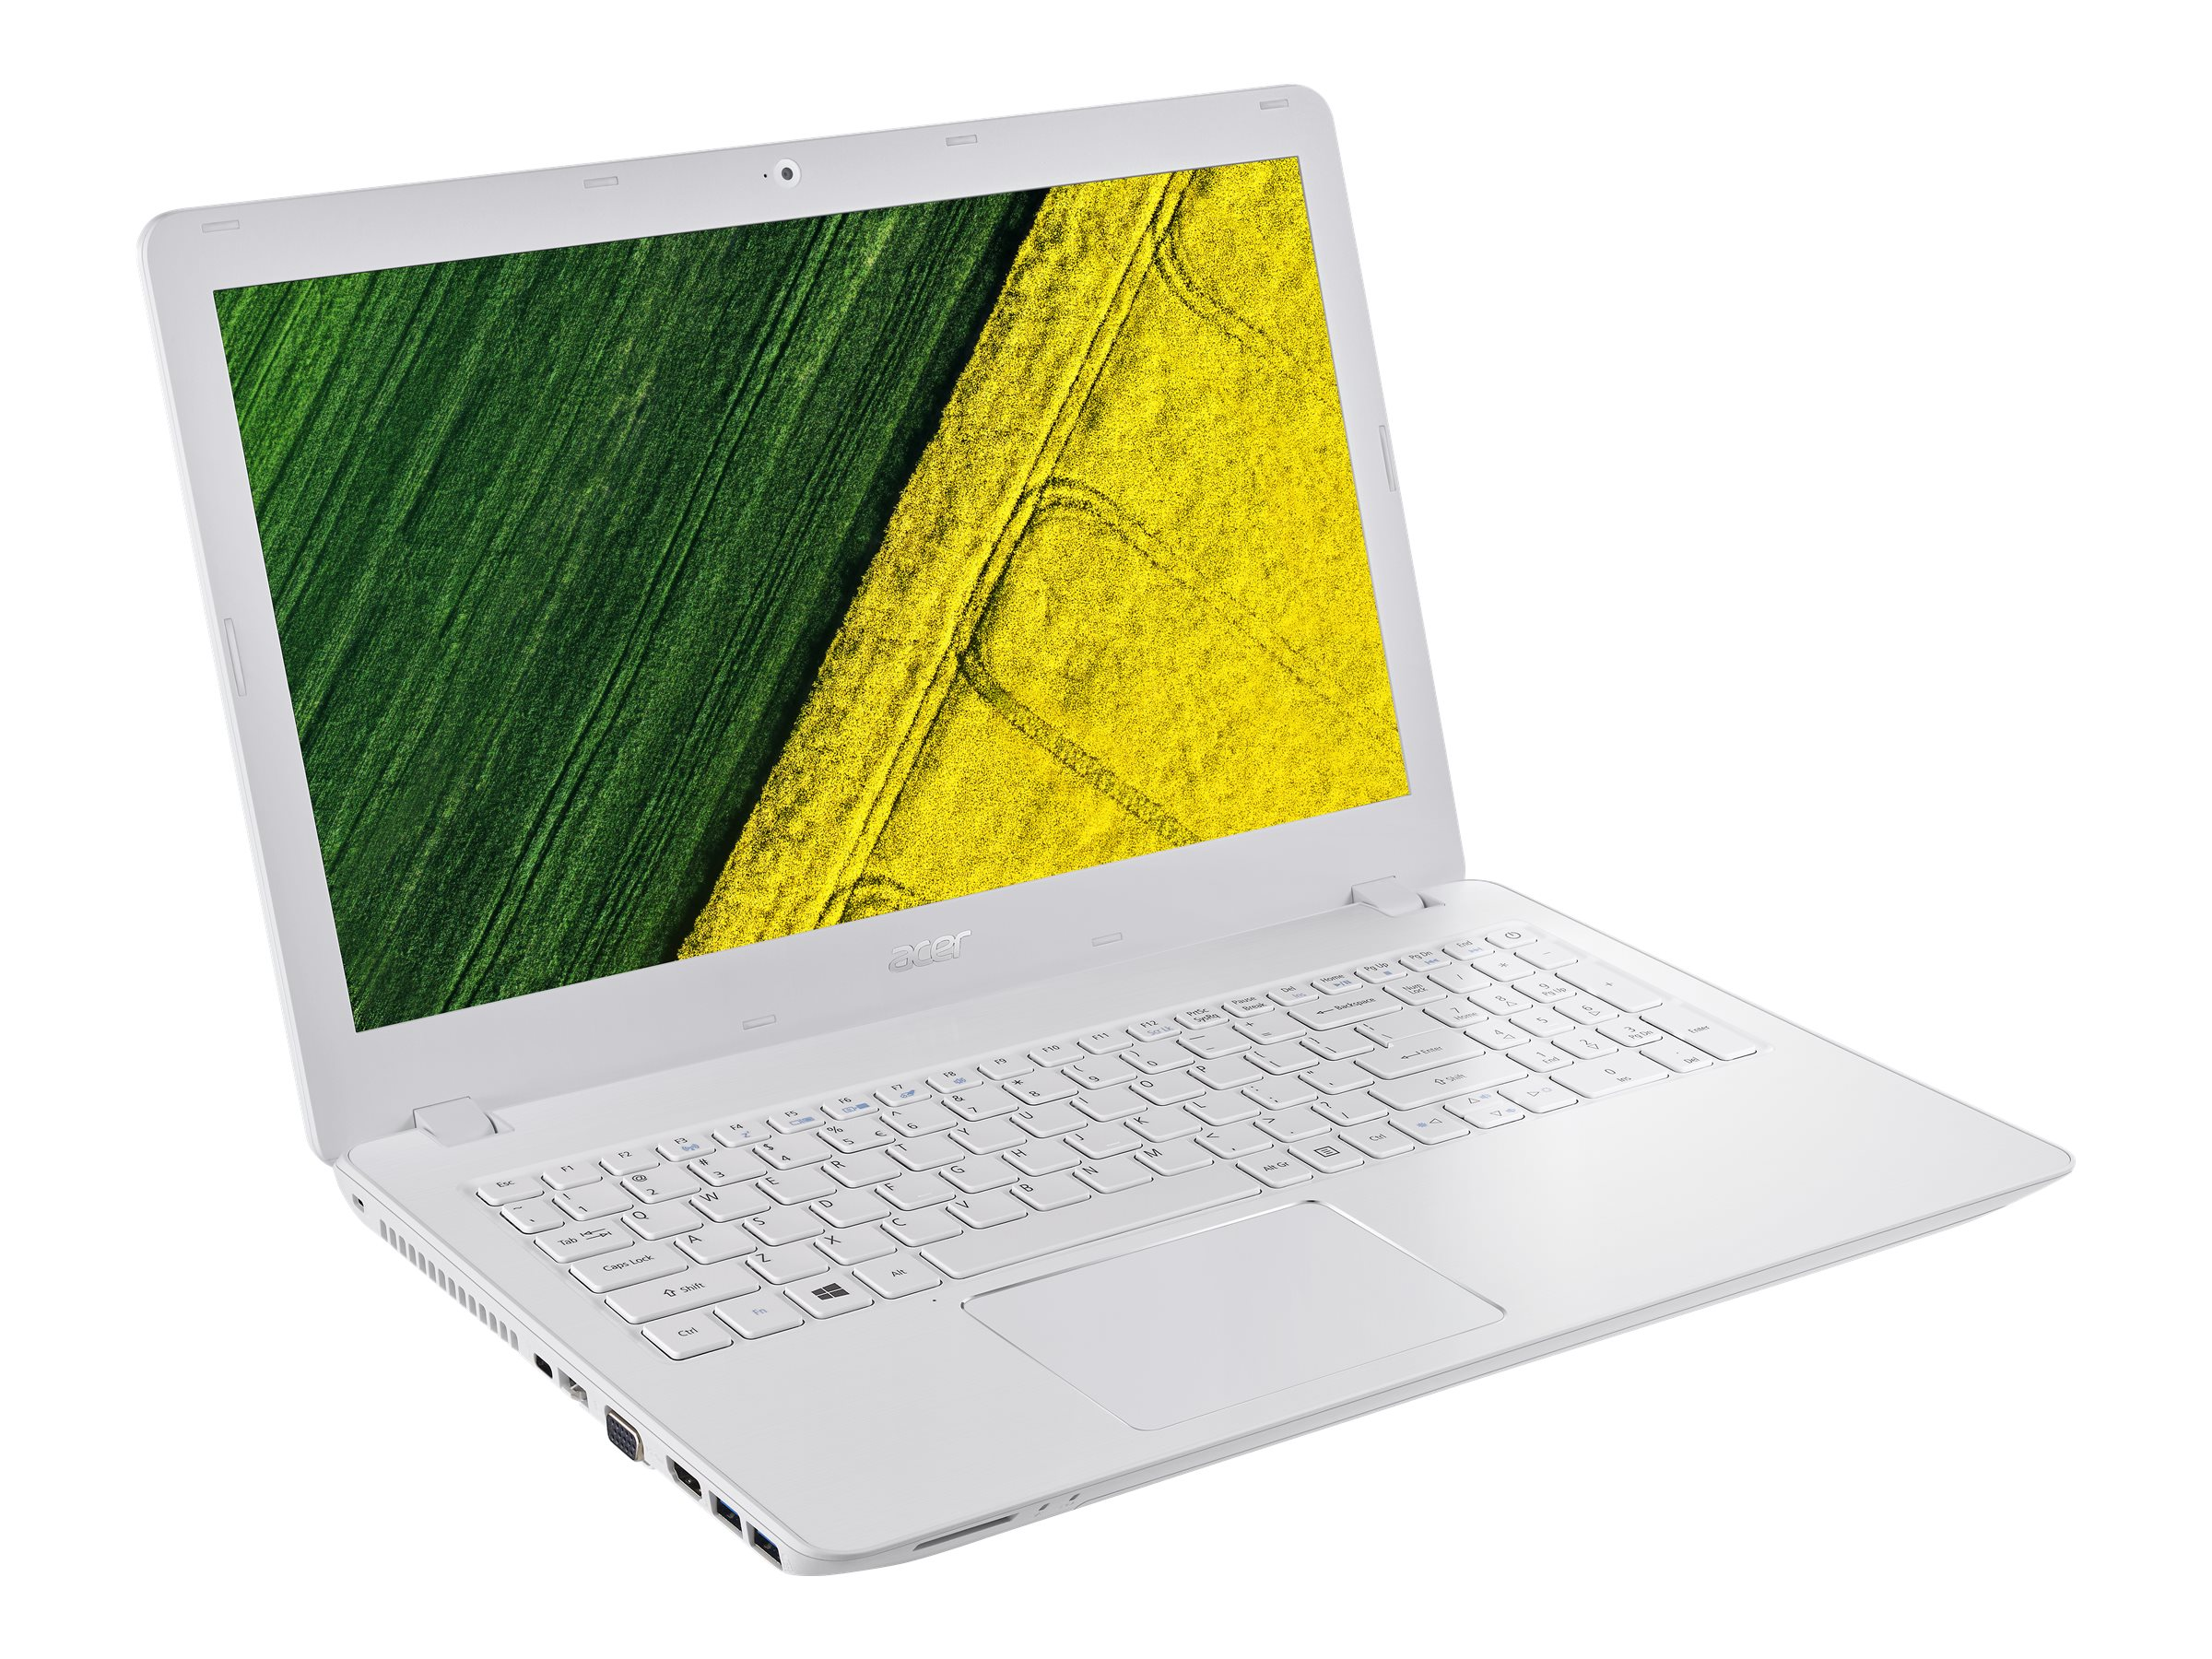 Acer Aspire F5-573-501D 2.5GHz Core i5 15.6in display, NX.GHTAA.001